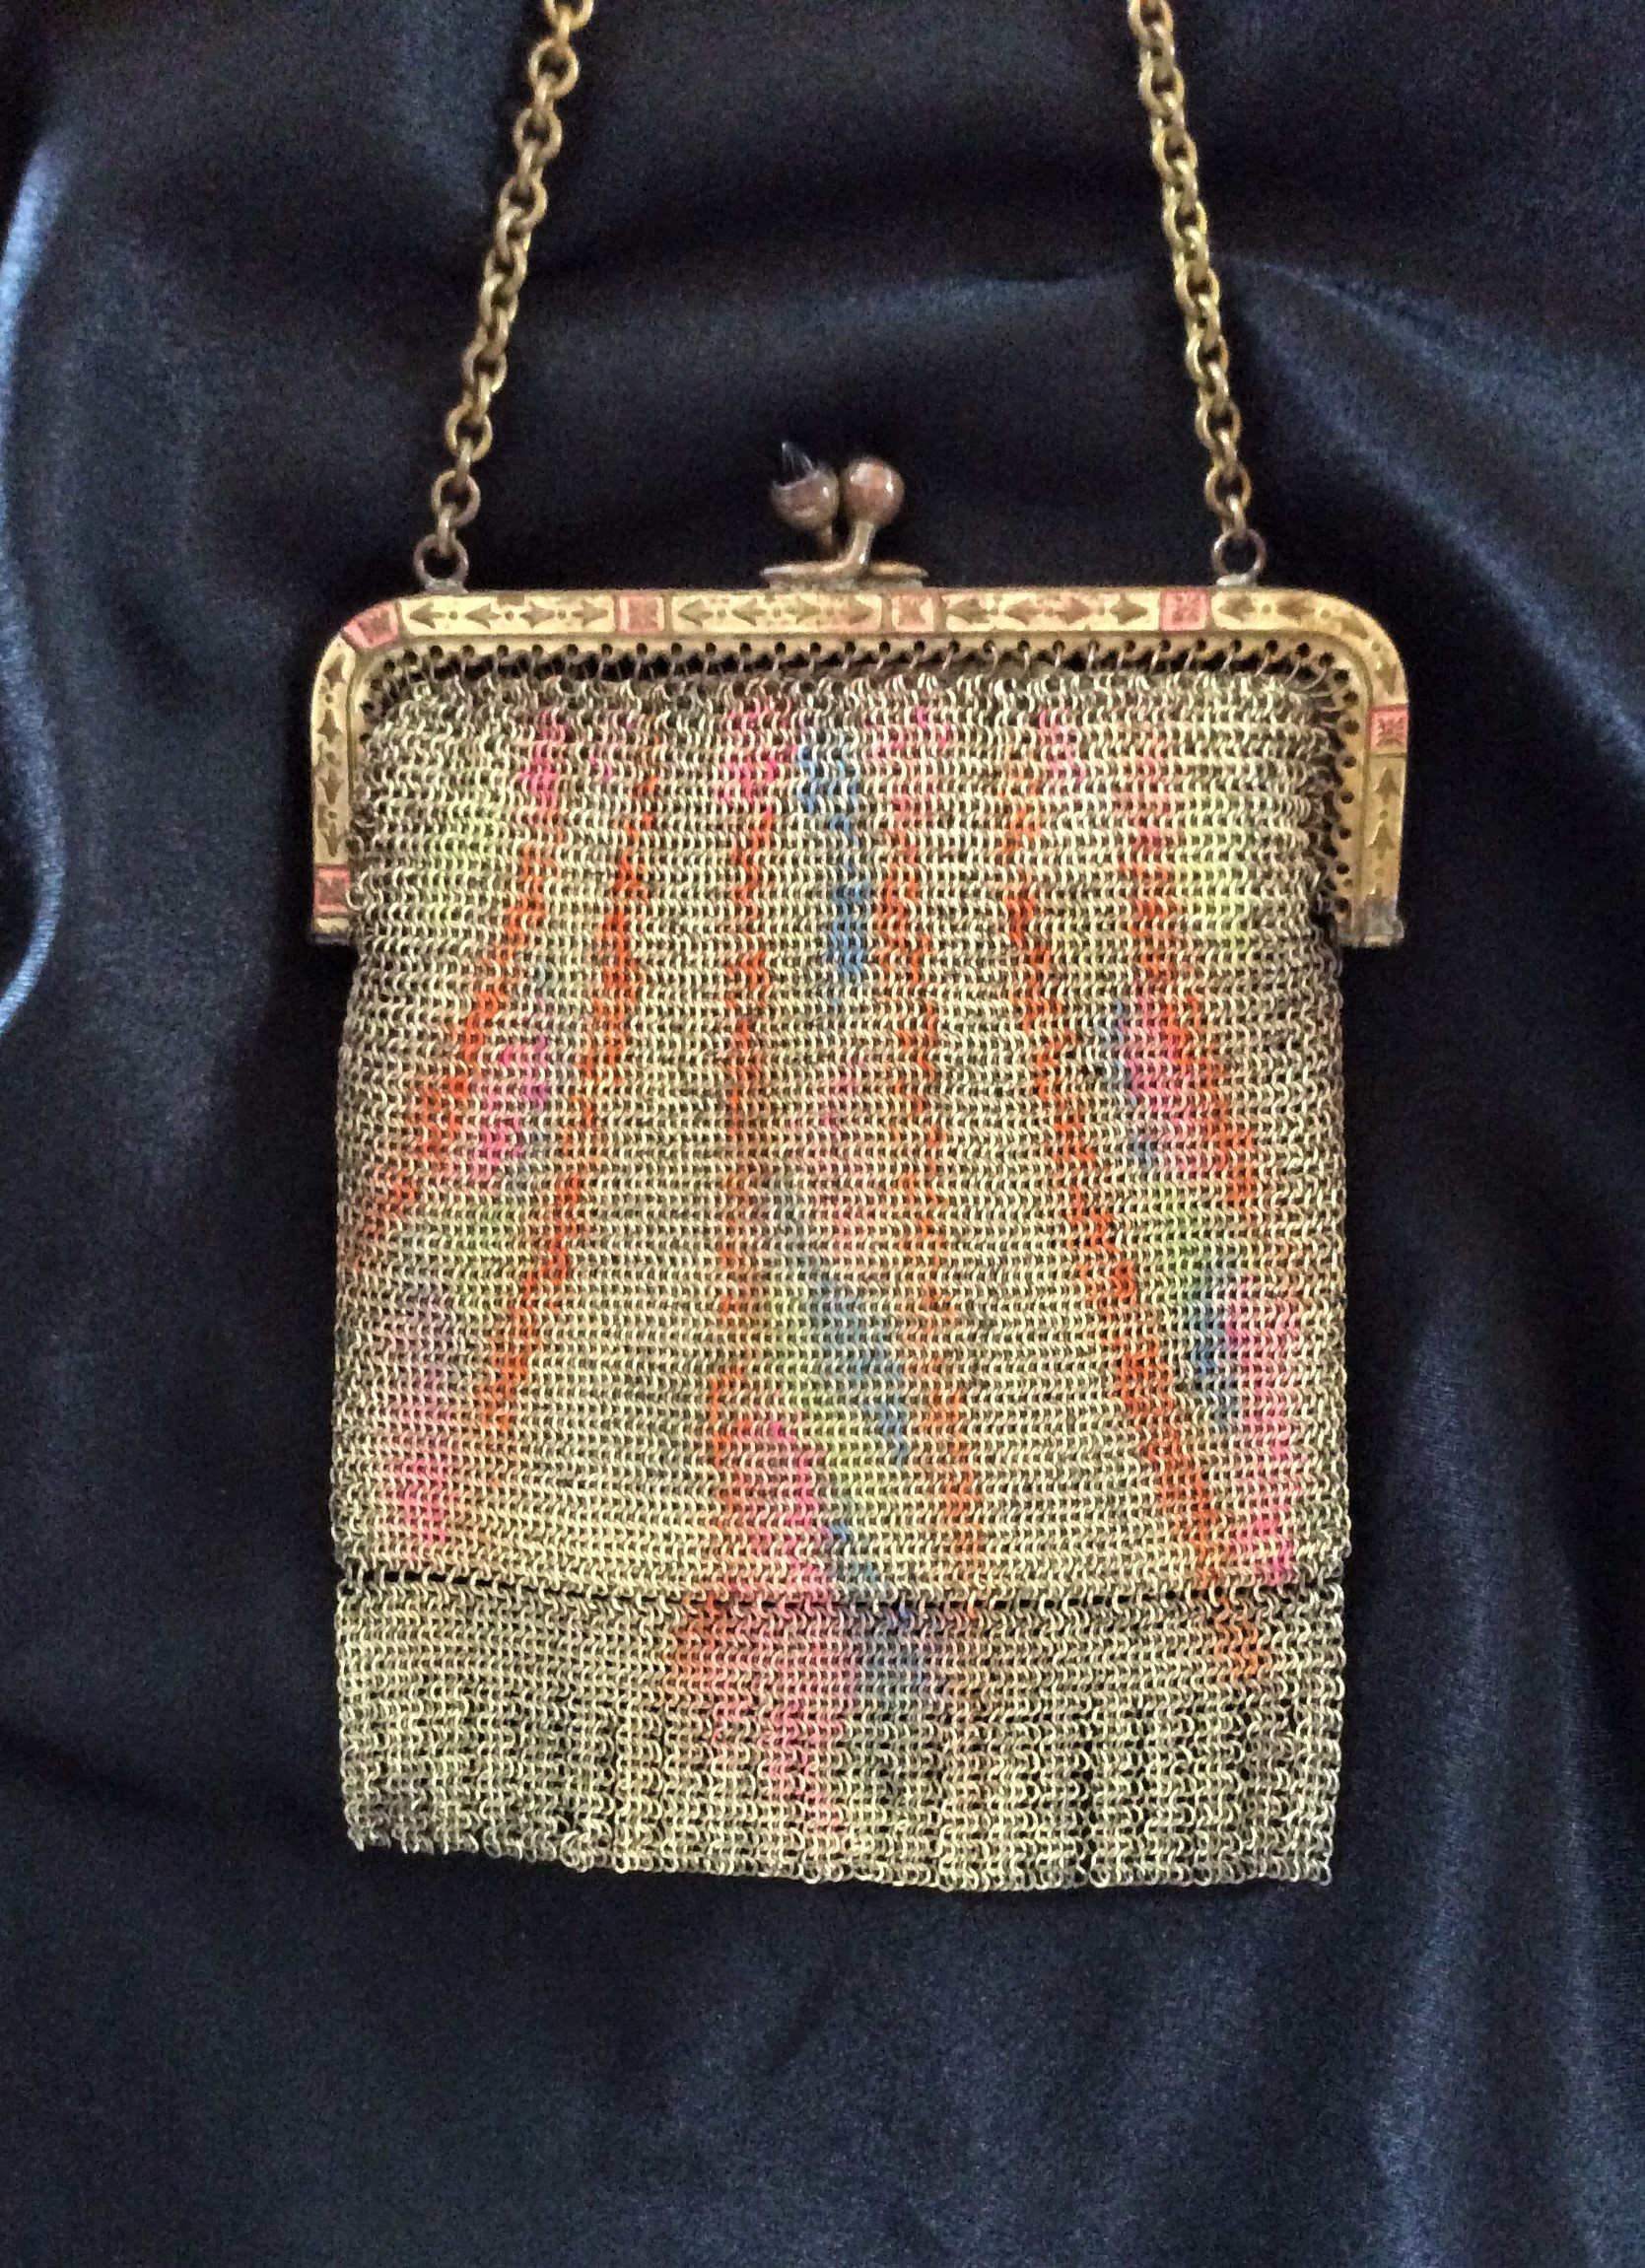 Exquisite Art Deco Fine Mesh Purse  Made in Germany                                                Size 4 inches x 3.6 inches includes frame not clasp.      Chain 12 inches long.     Film/Theatre Prop